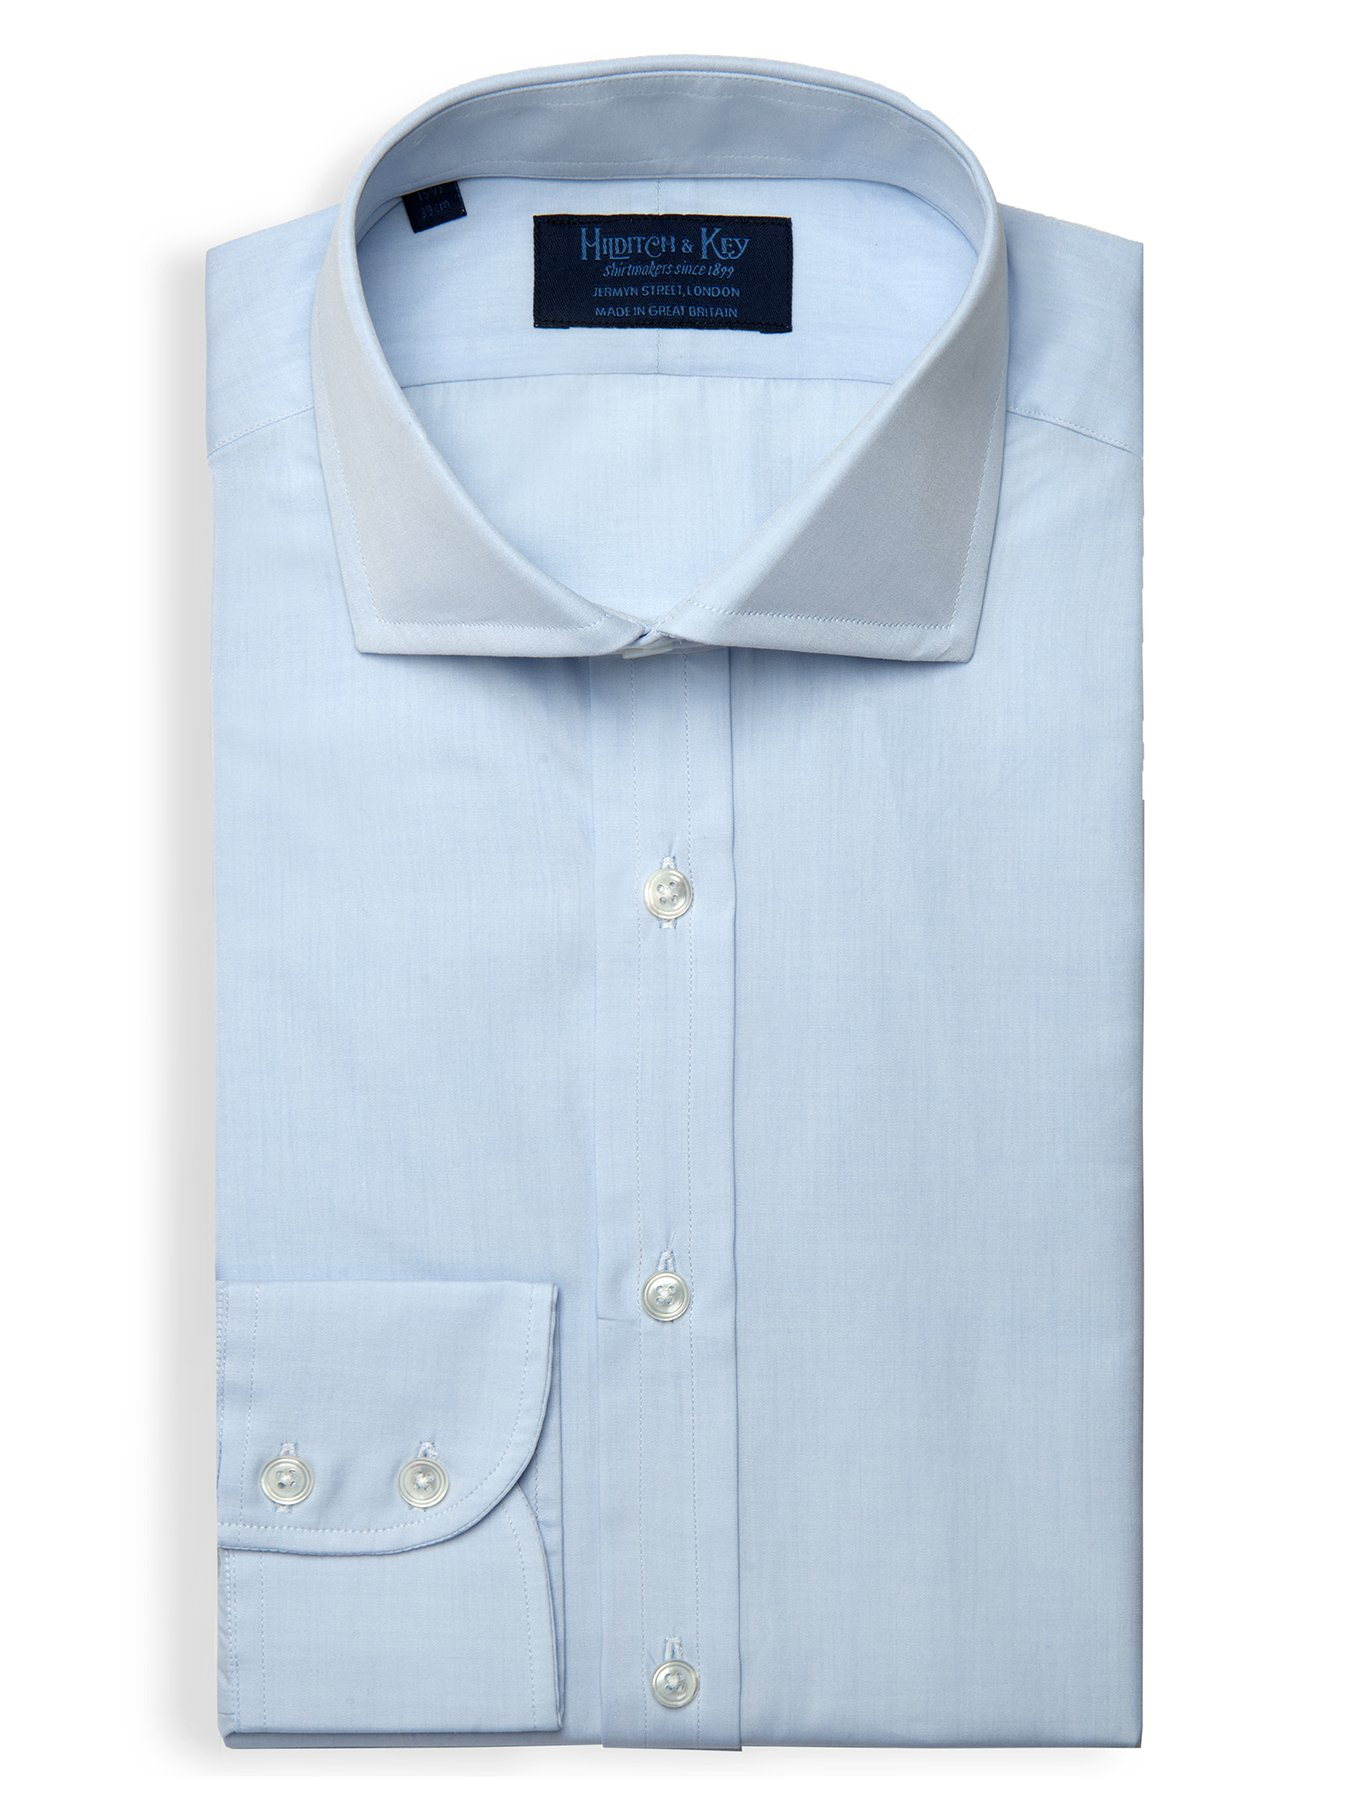 Cutaway Collar | Shirts for Bow Ties | Windsor Spread Collar